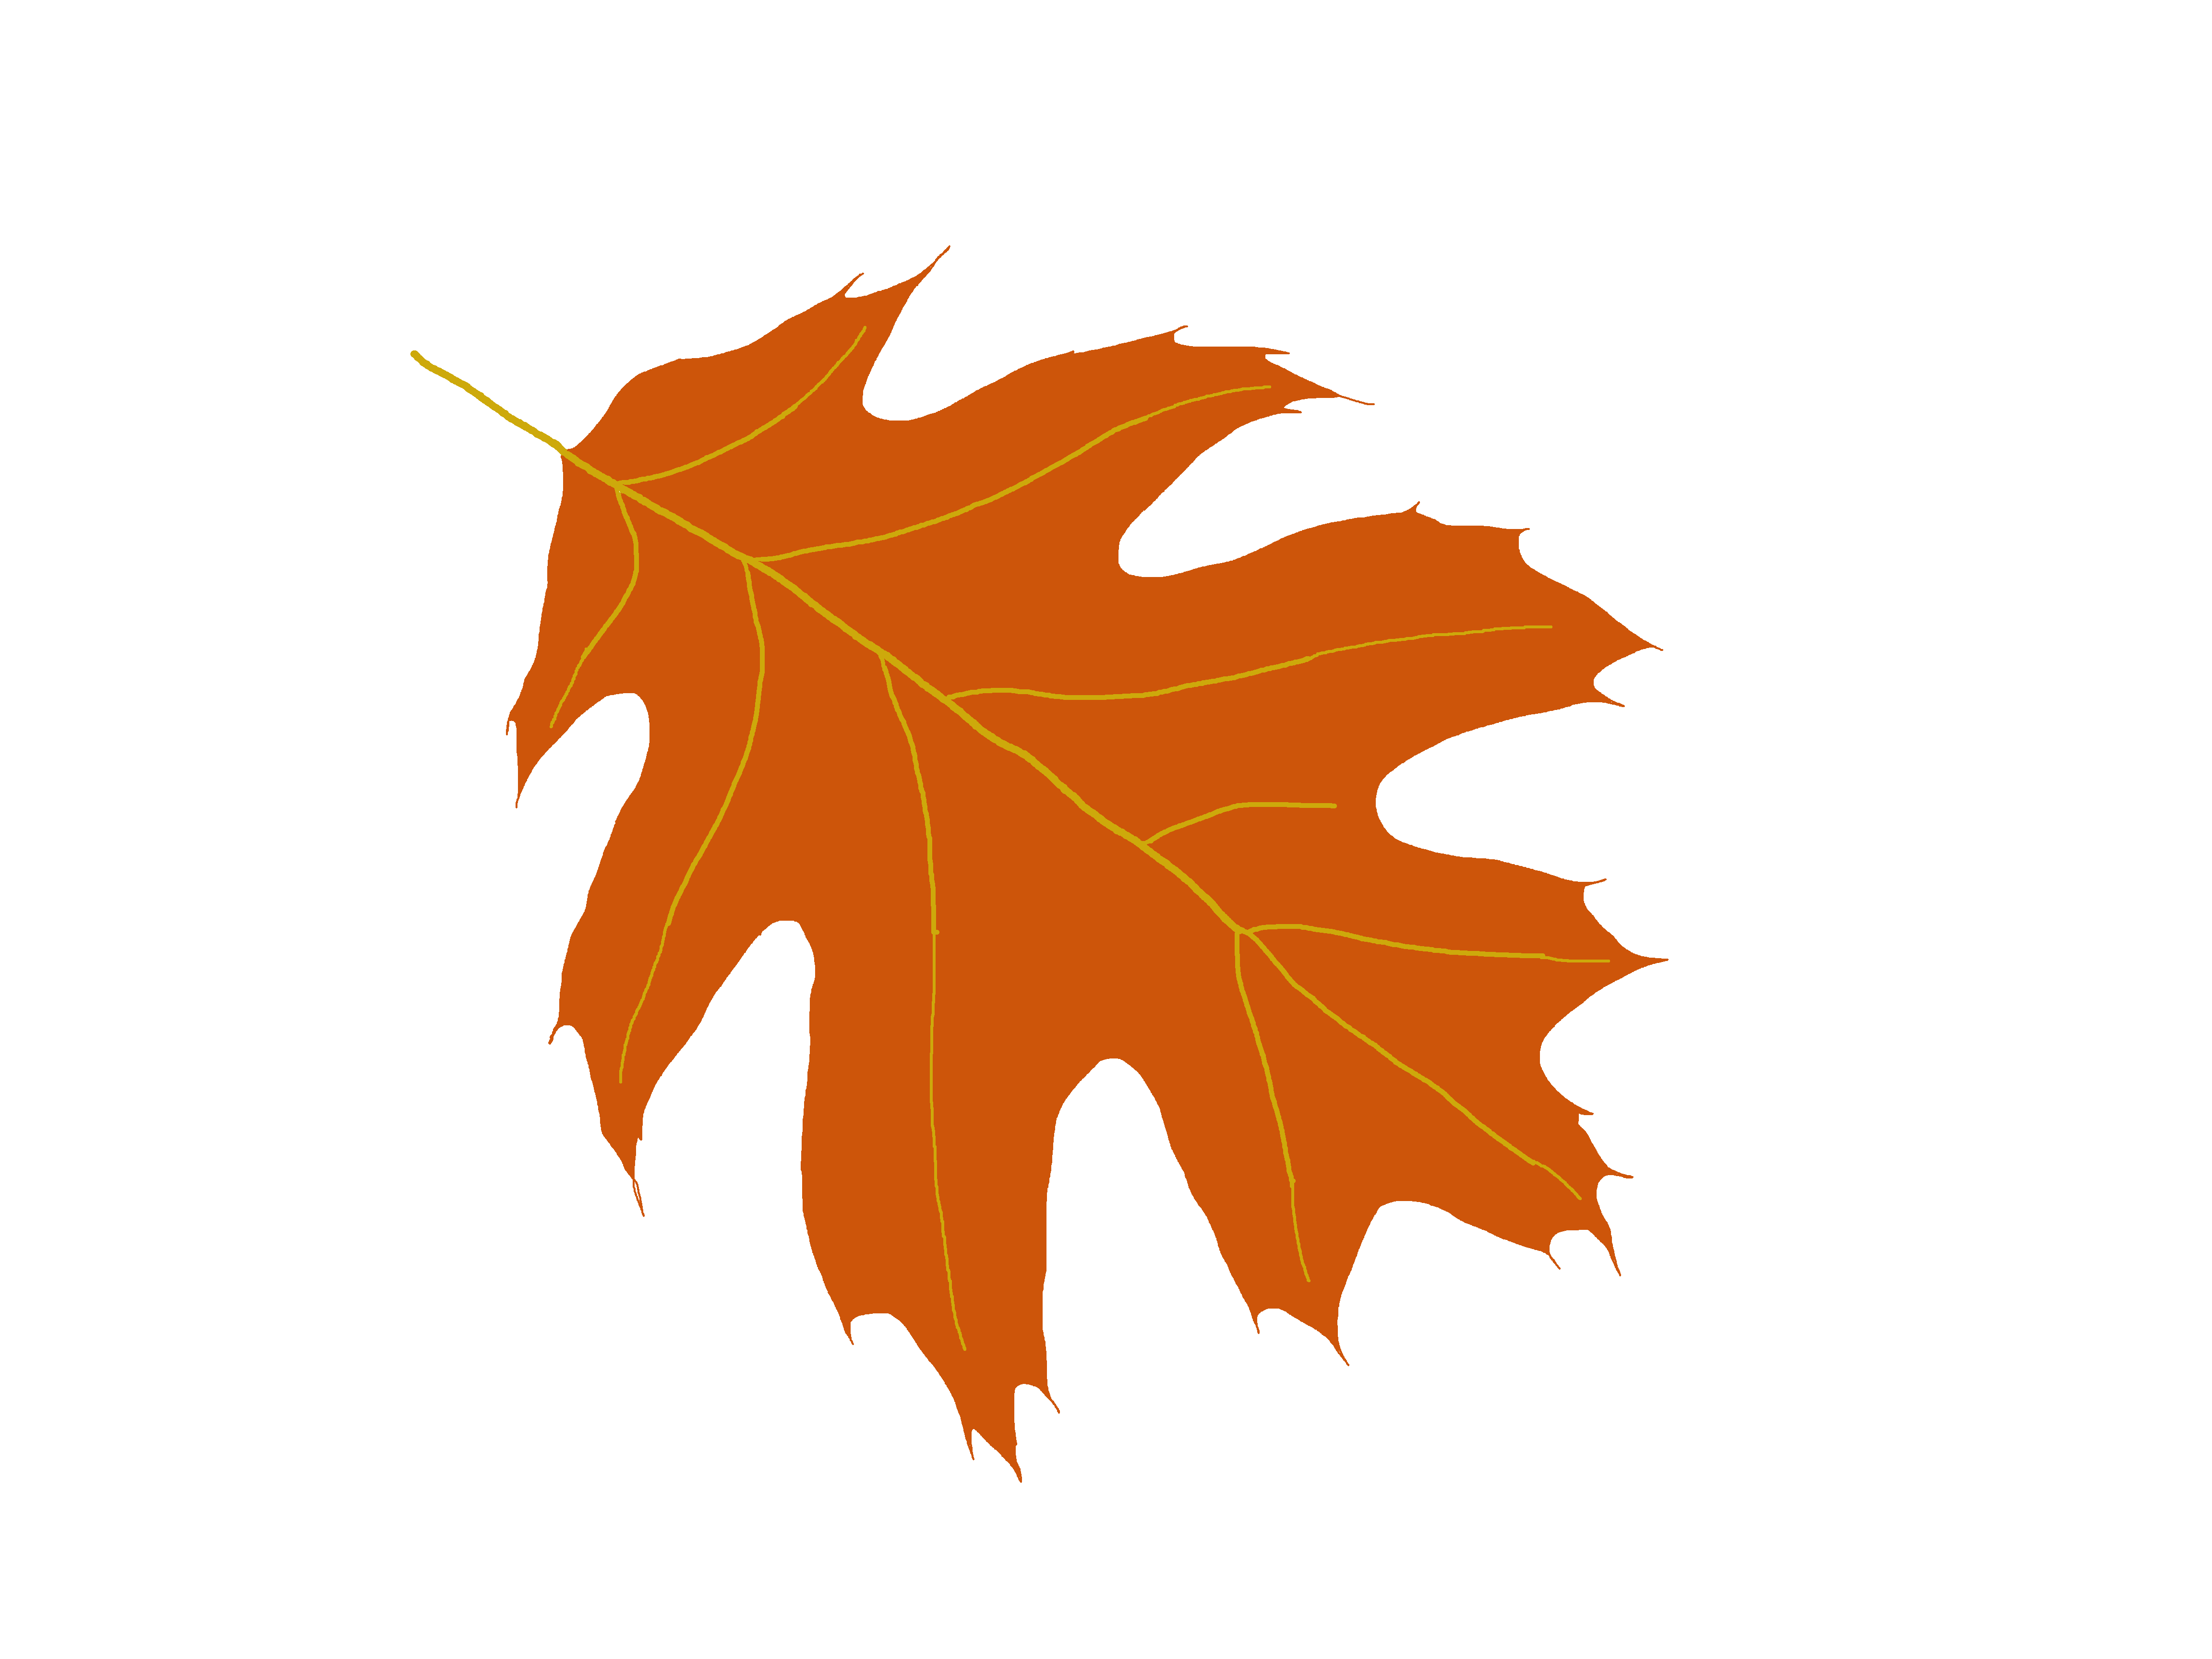 Leaf clipart face.  collection of oak